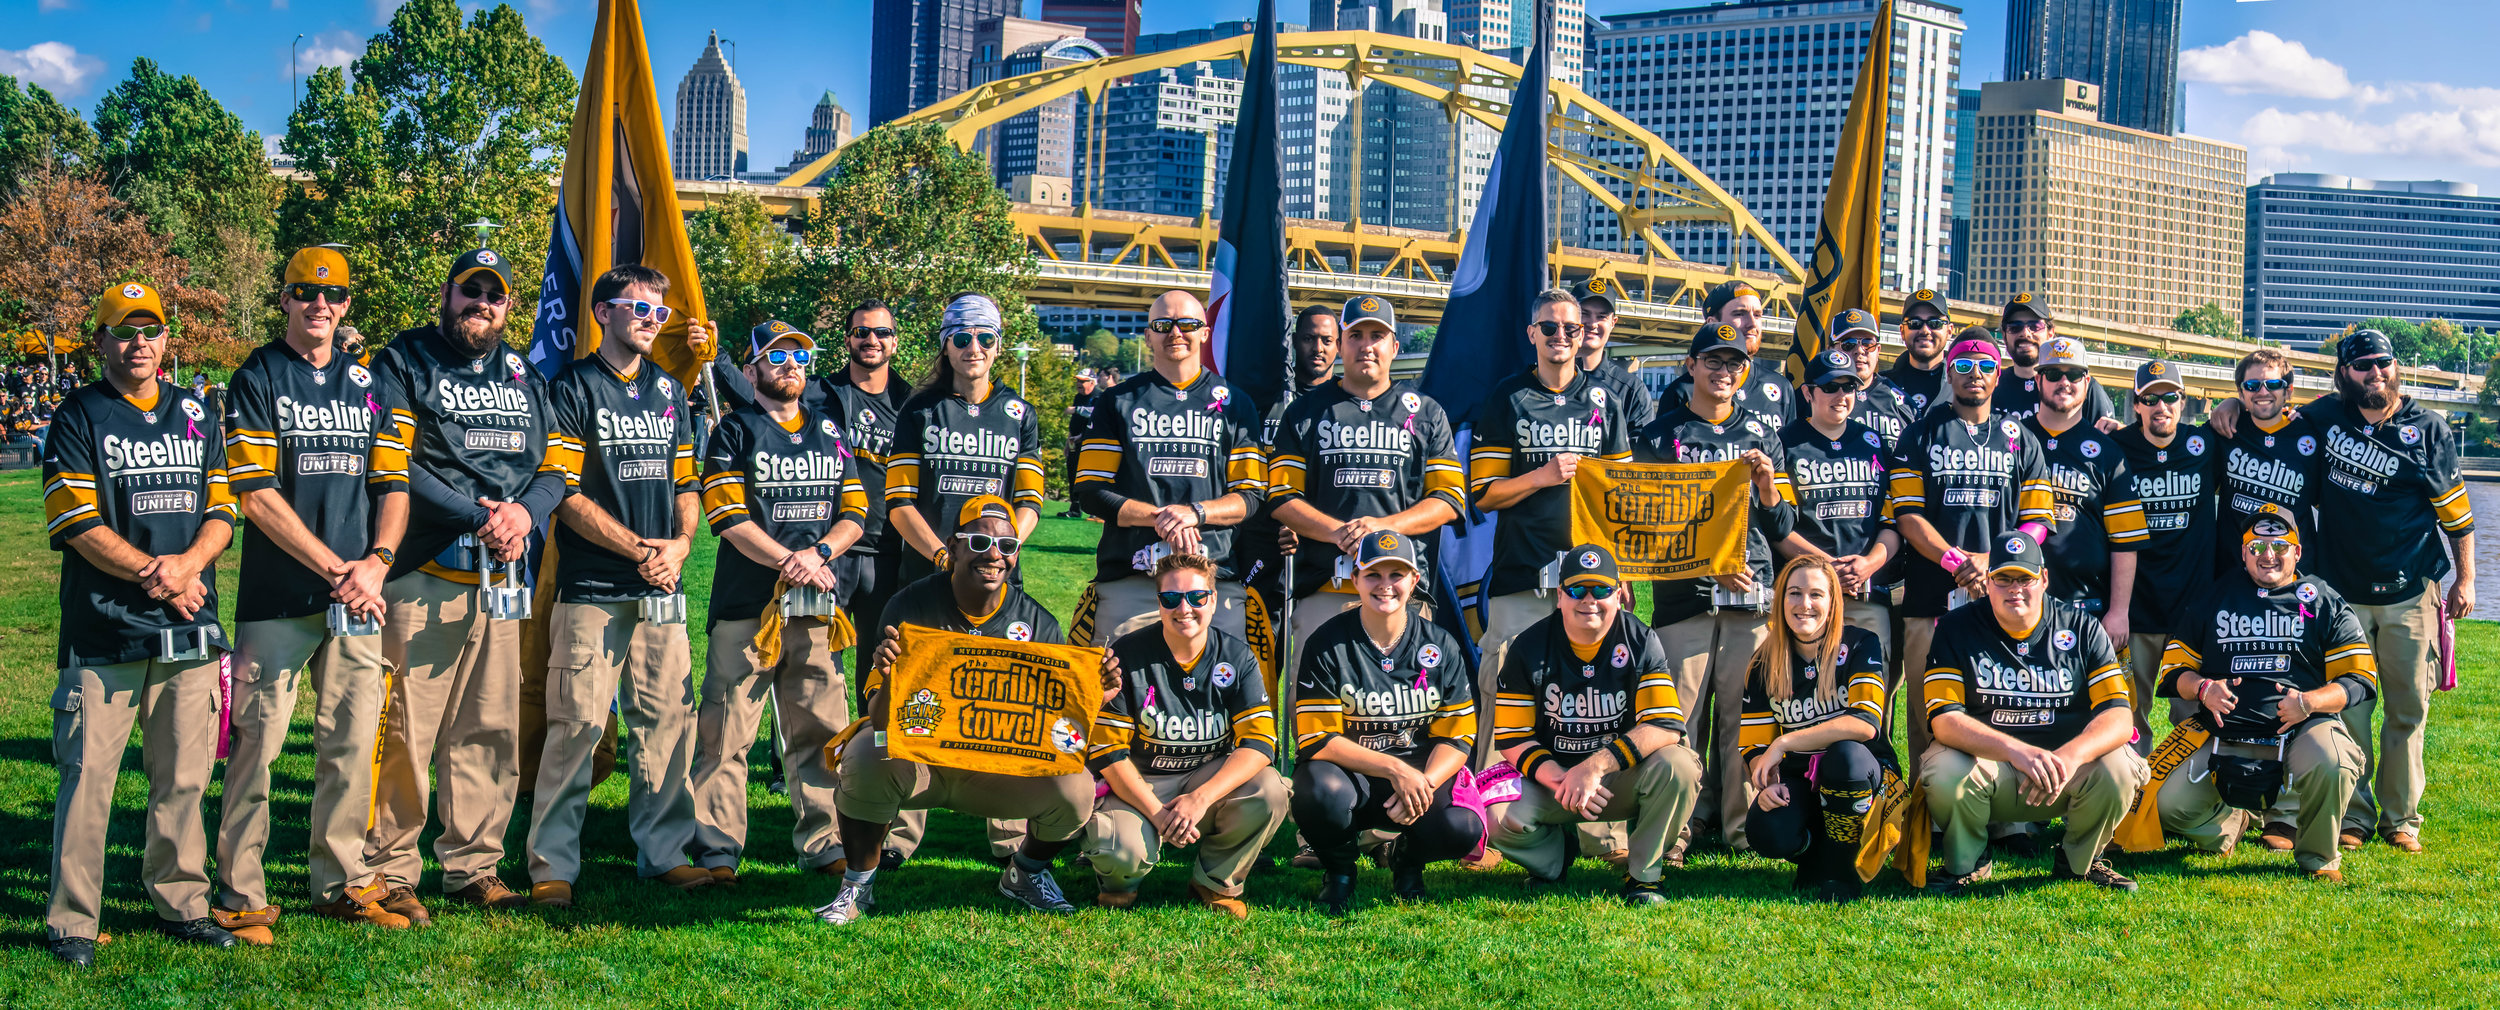 4 years later, and after 3 seasons working for the team, the full Steeline before a Steelers game on October 23rd, 2016 at Heinz Field.